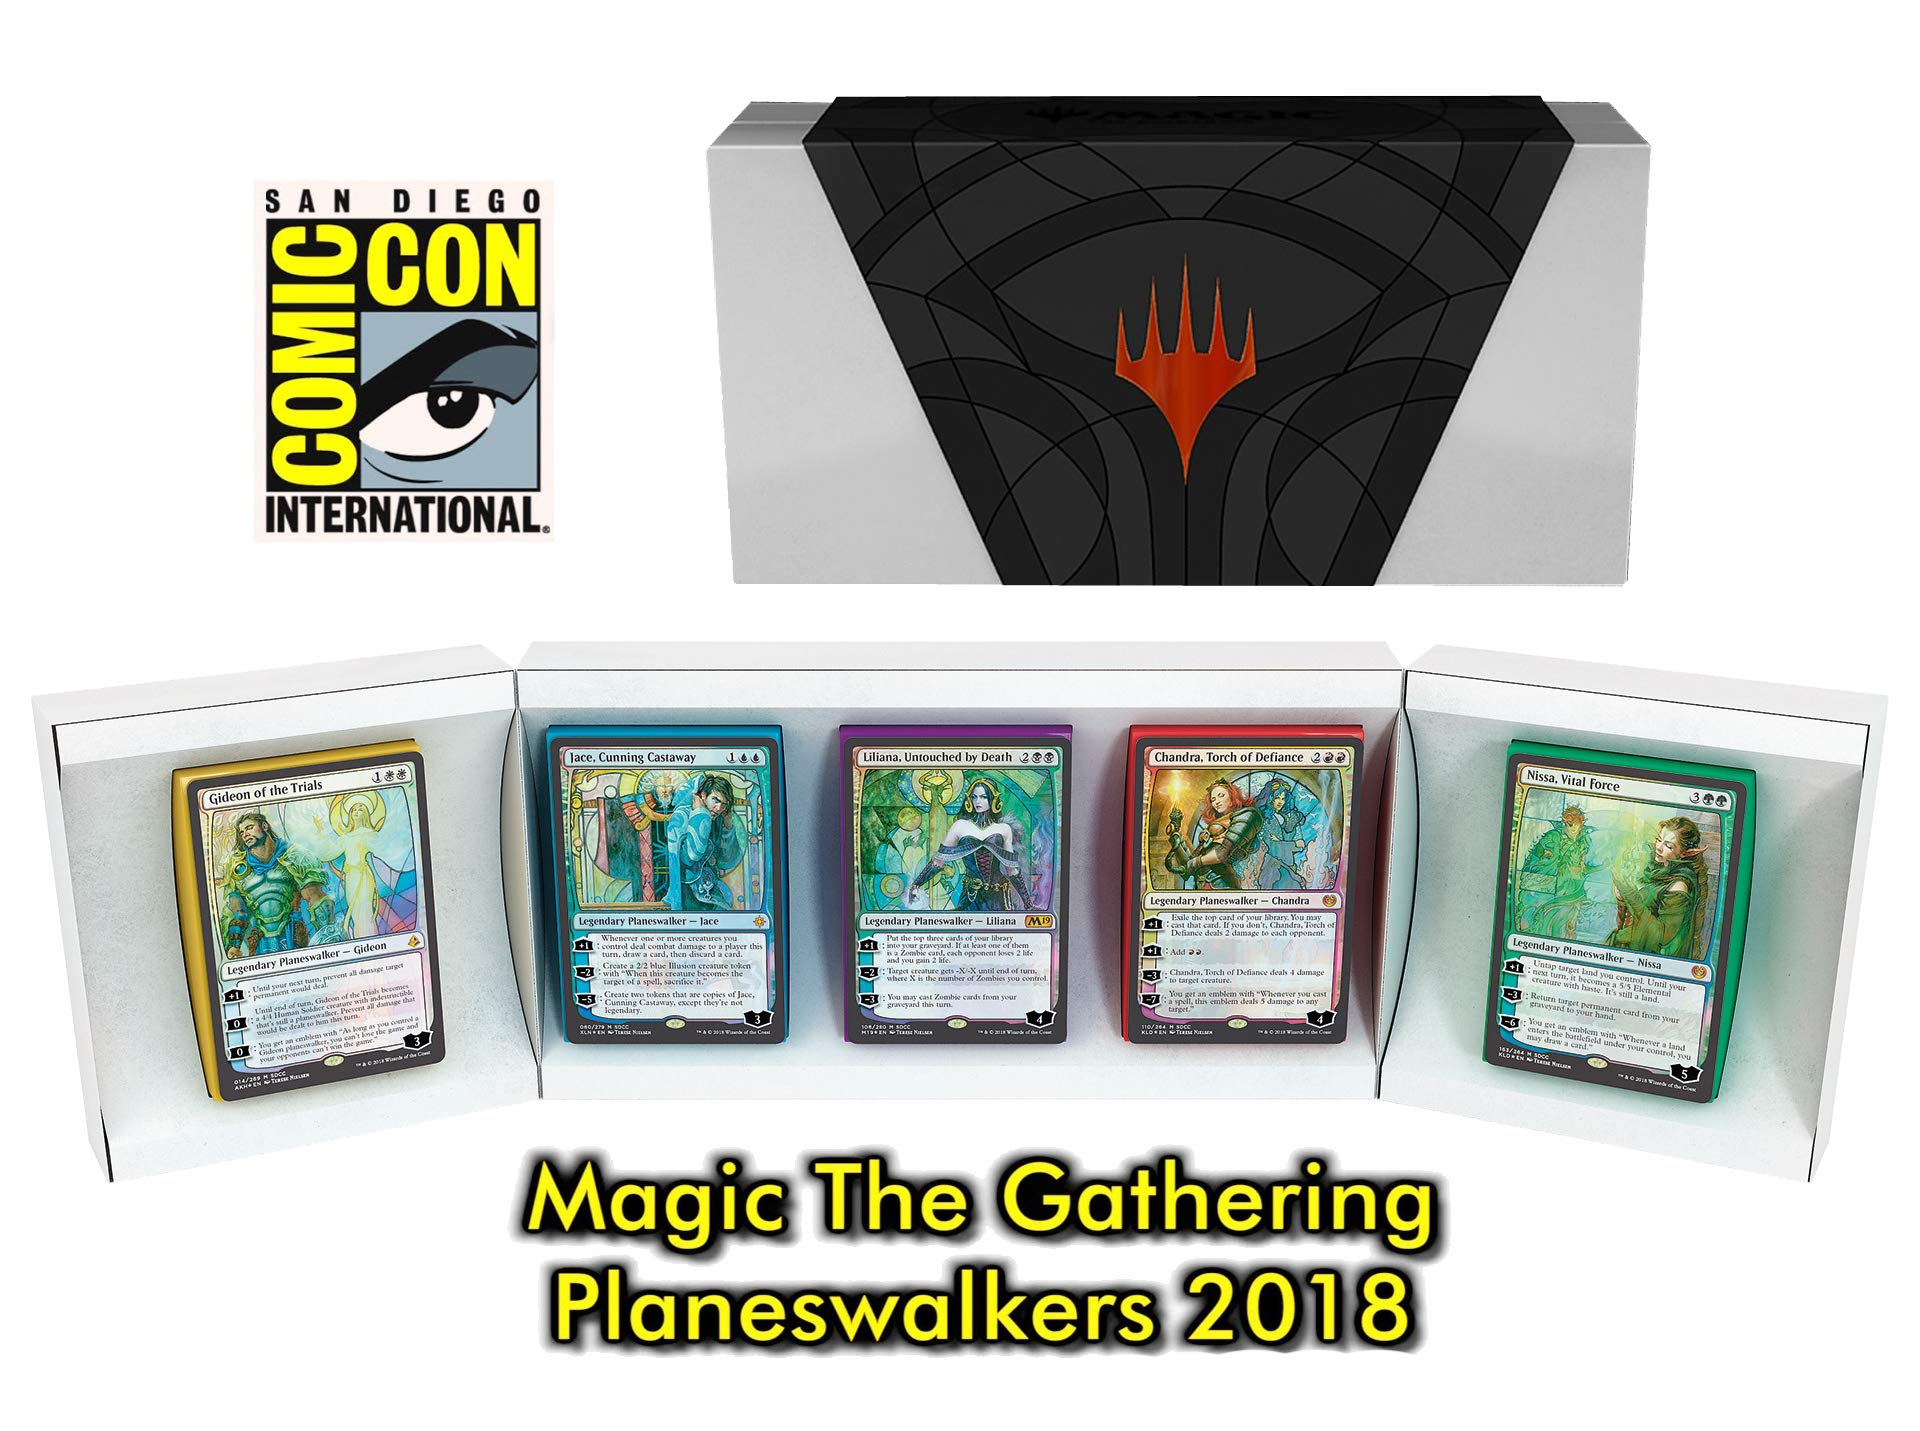 SDCC 2018 Limited Edition Exclusive!! _Magic: The Gathering (MTG), Timeless Legends Box Set